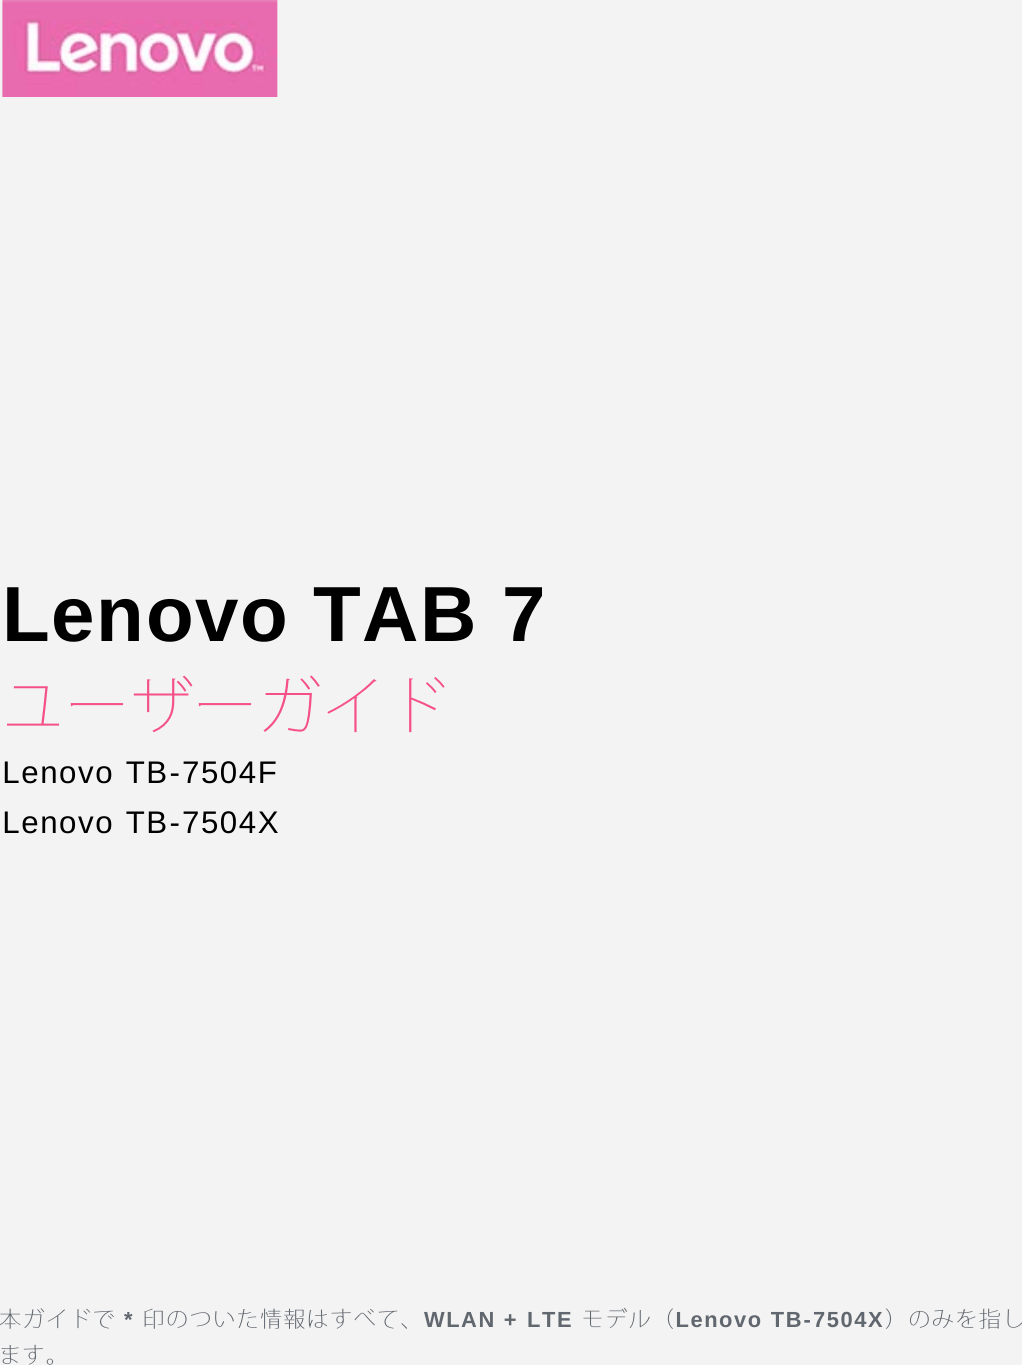 Lenovo Tab 7 Ug Ja 201710 User Manual ユーザーガイド (Lenovo TB